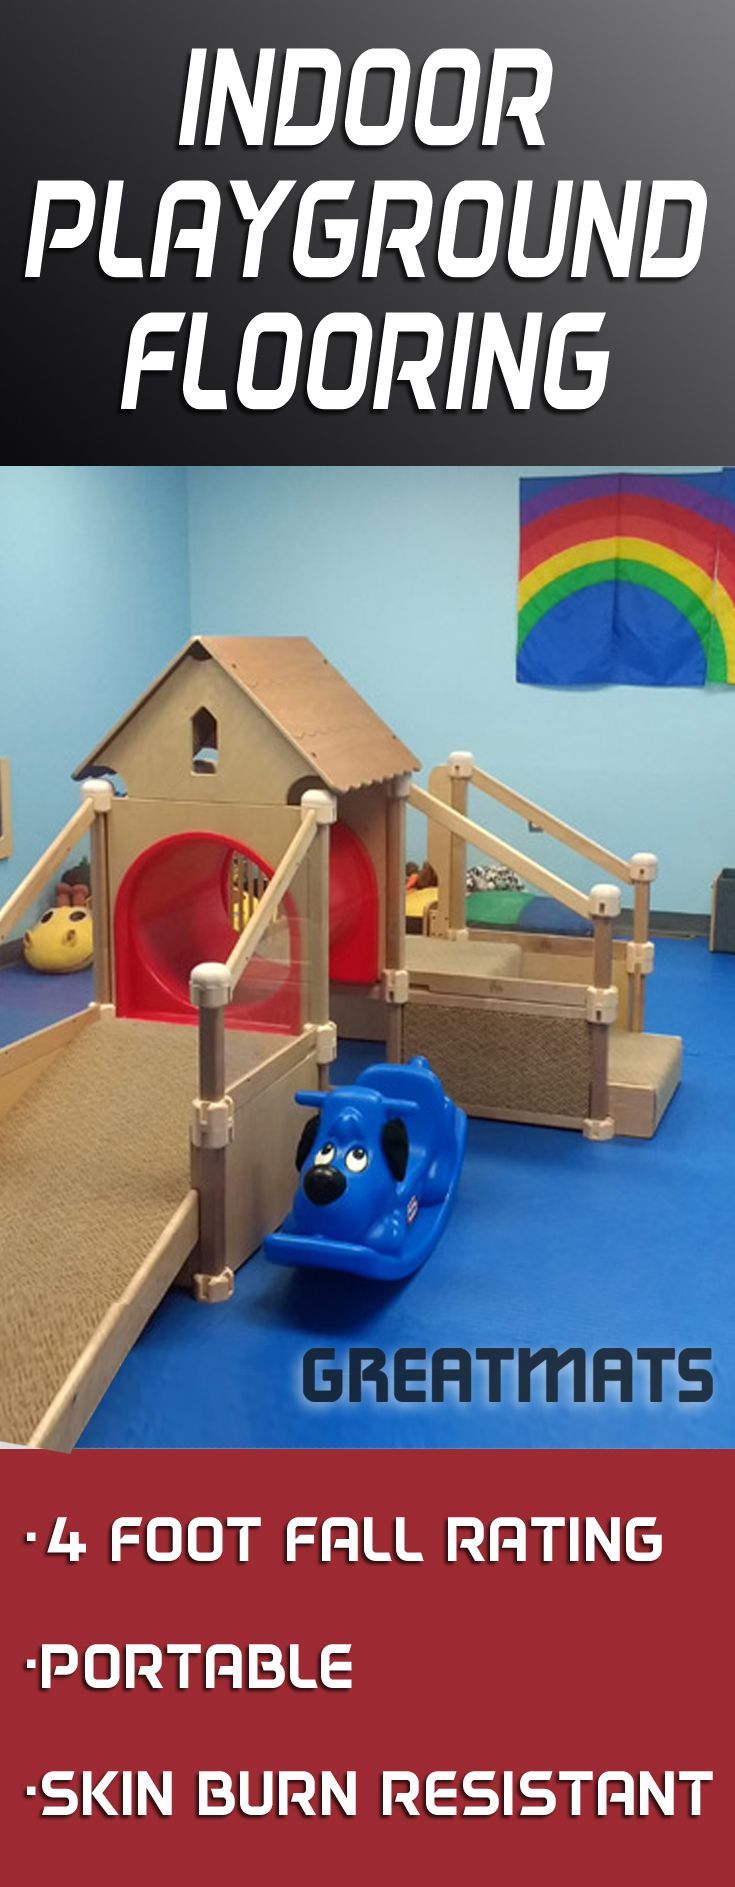 Best 25 playground flooring ideas on pinterest backyard want fall protection for your indoor playground check out what this indoor playground flooring is dailygadgetfo Images